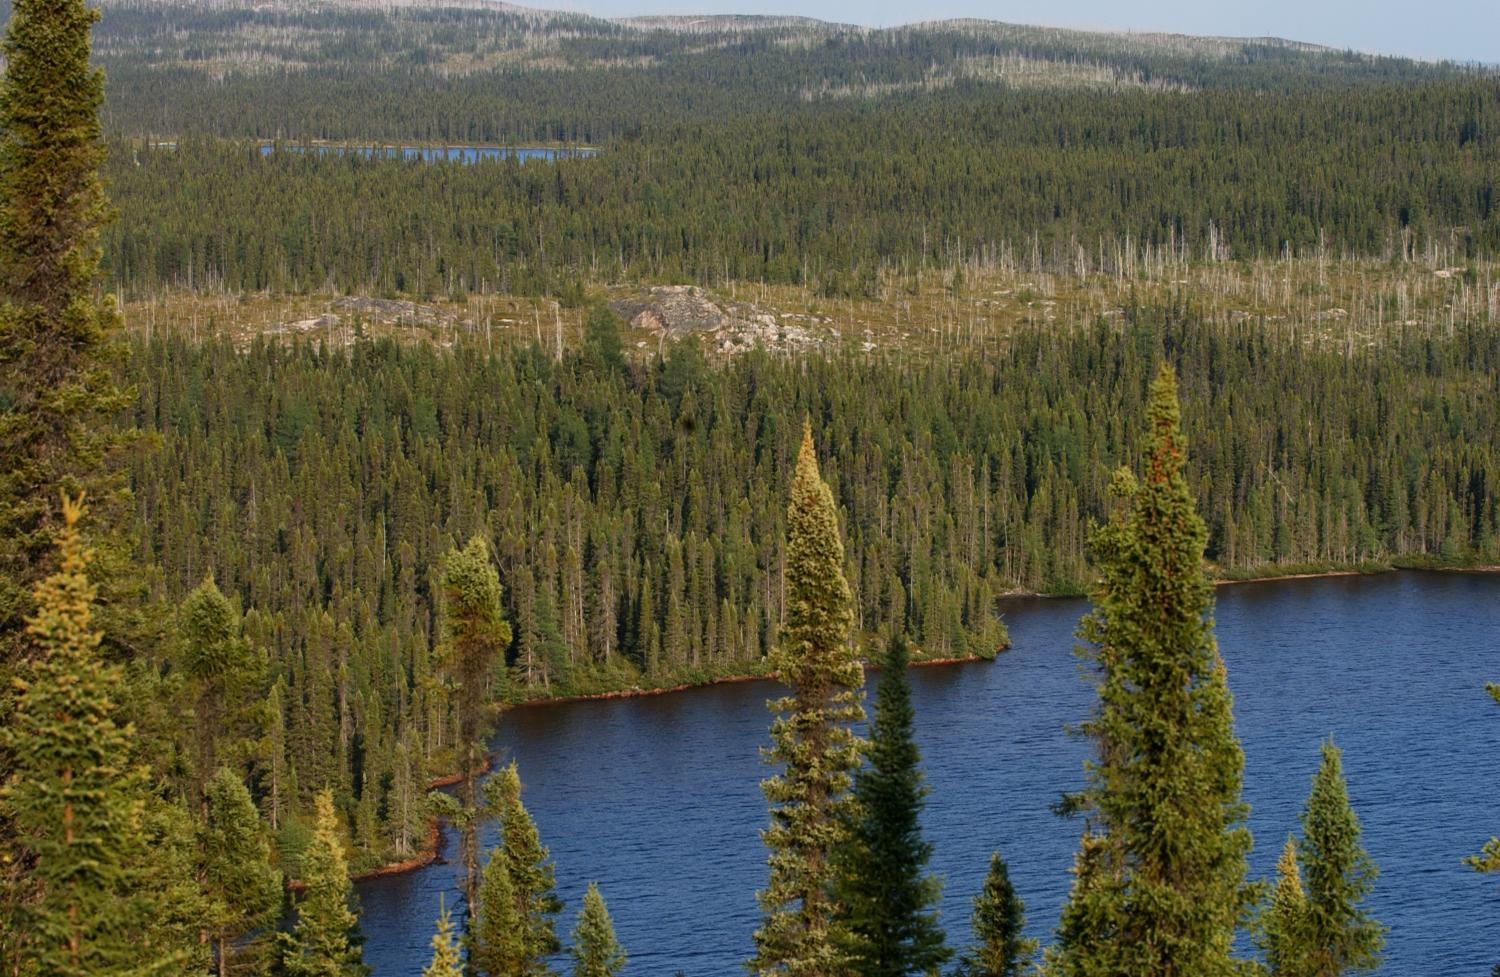 Deciduous trees offset carbon loss from Alaskan boreal fires, new study finds